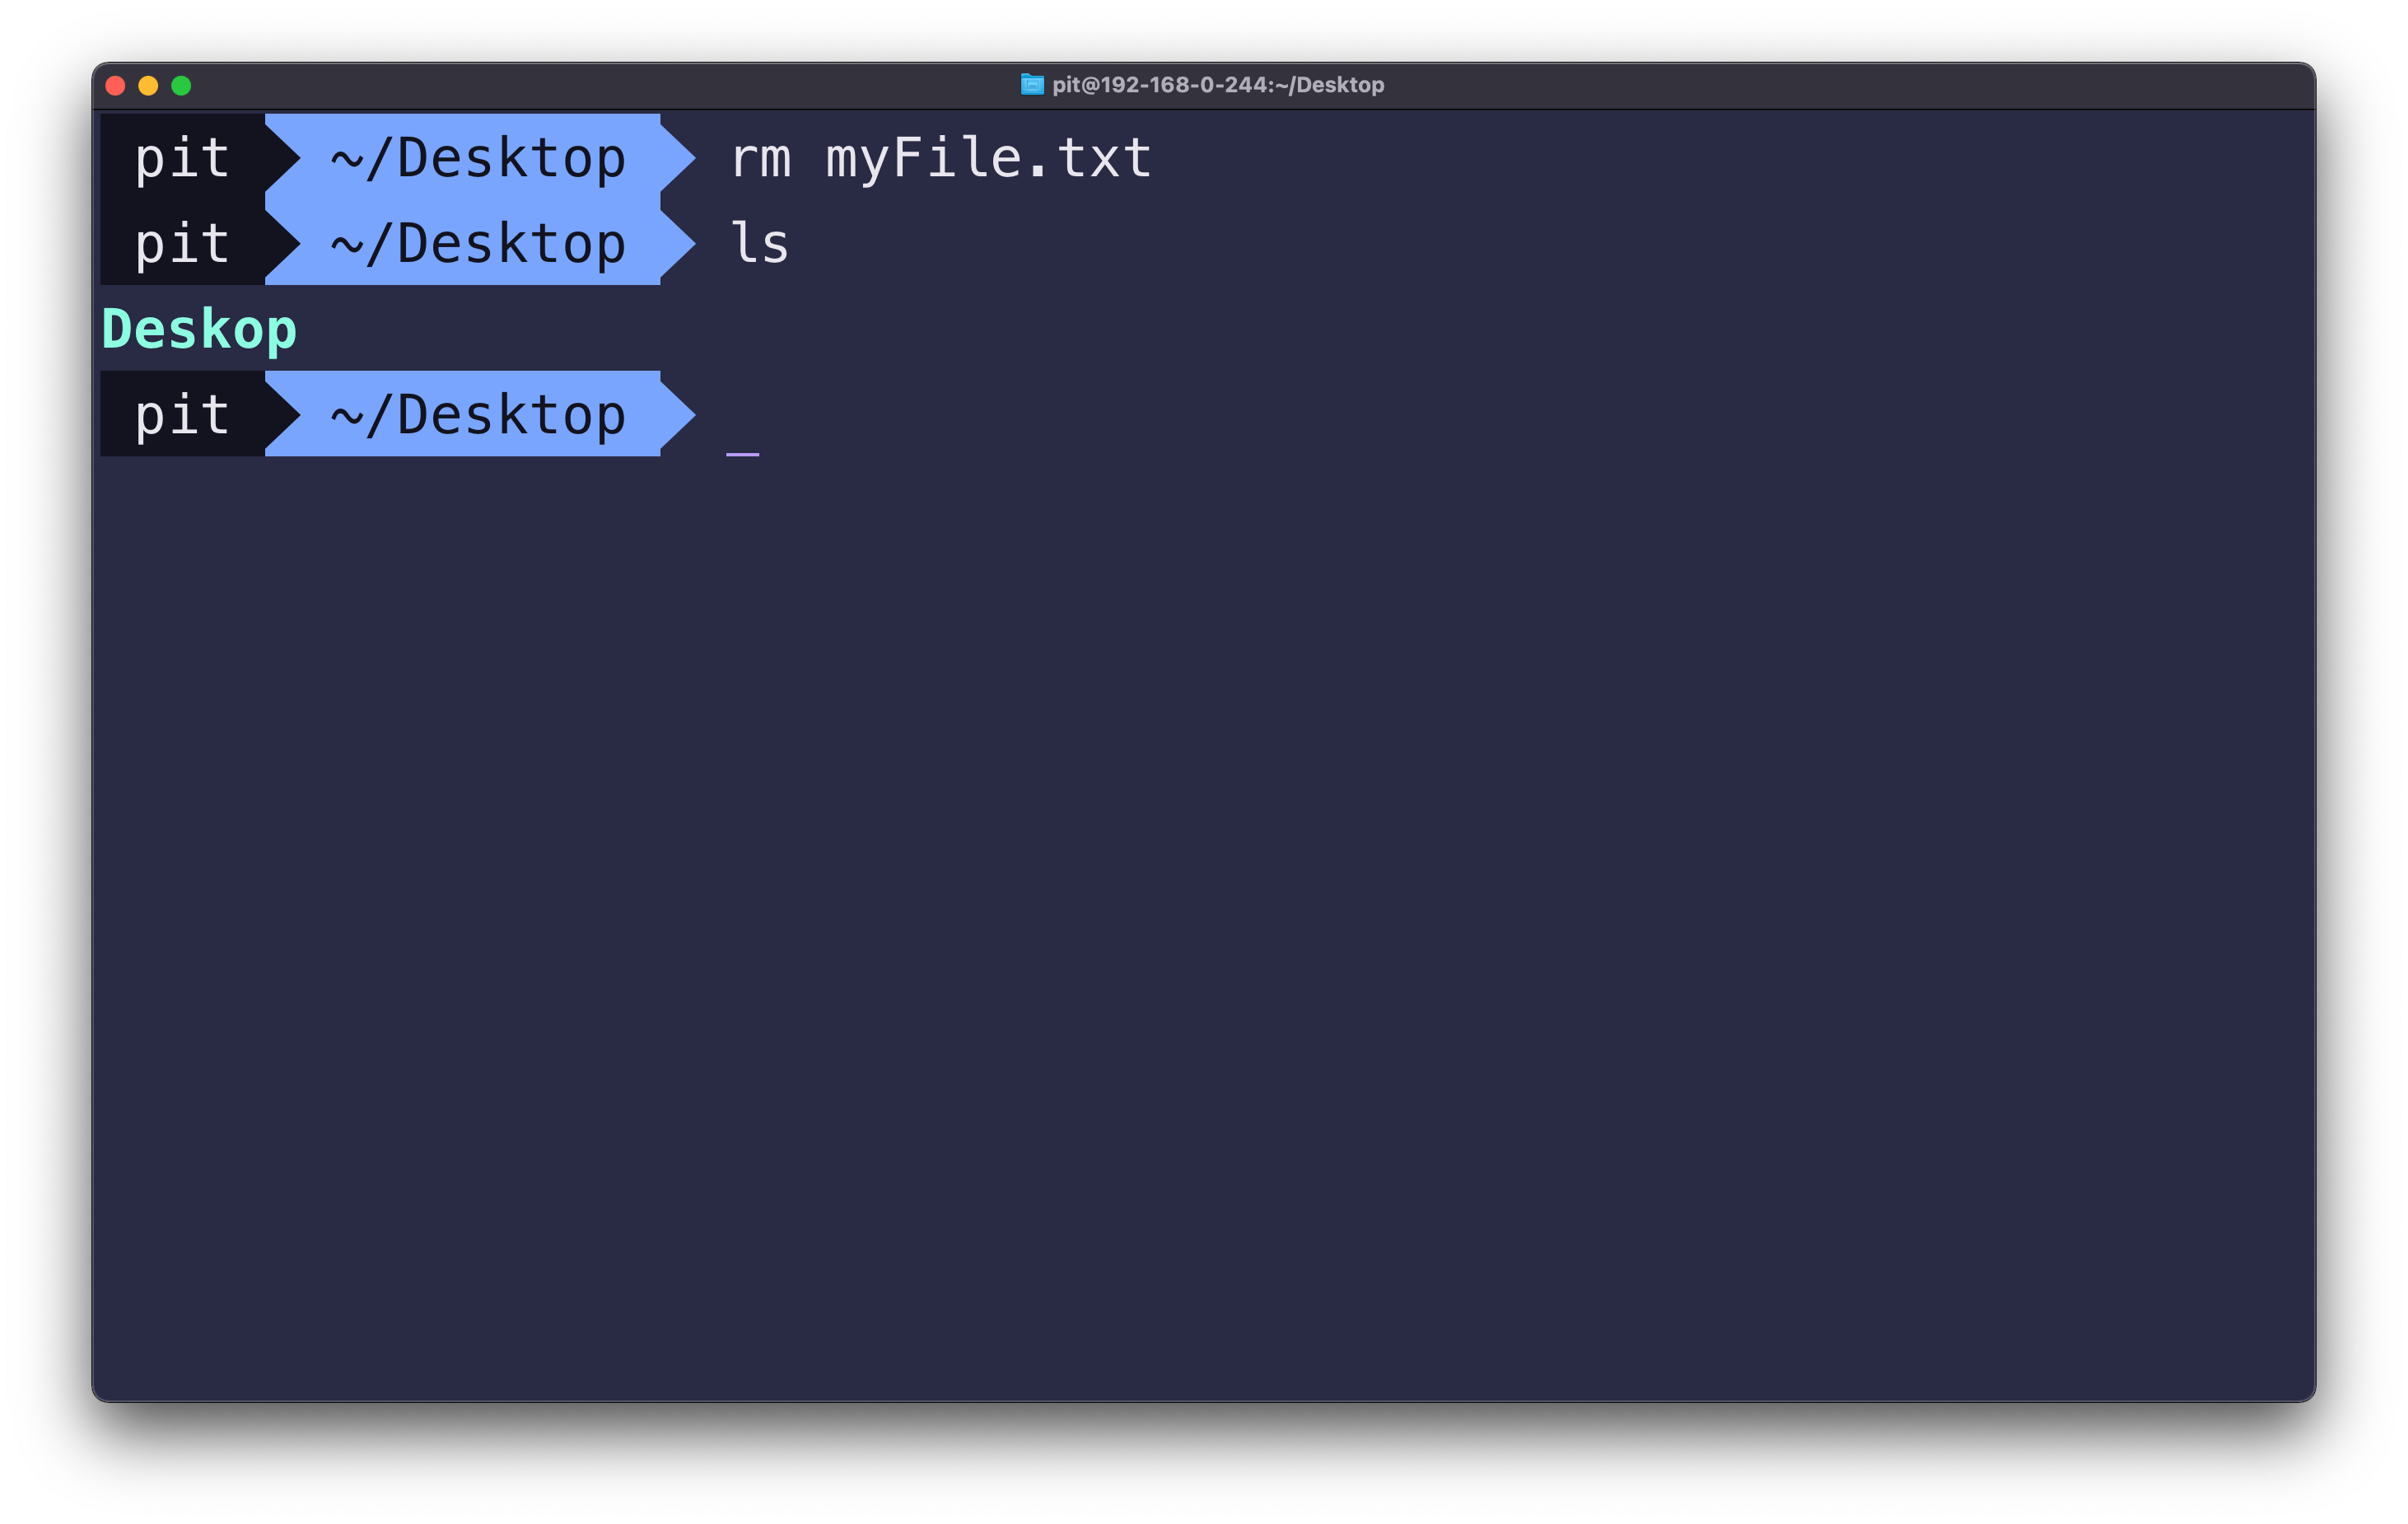 Screenshot illustrating the rm command on macOS terminal